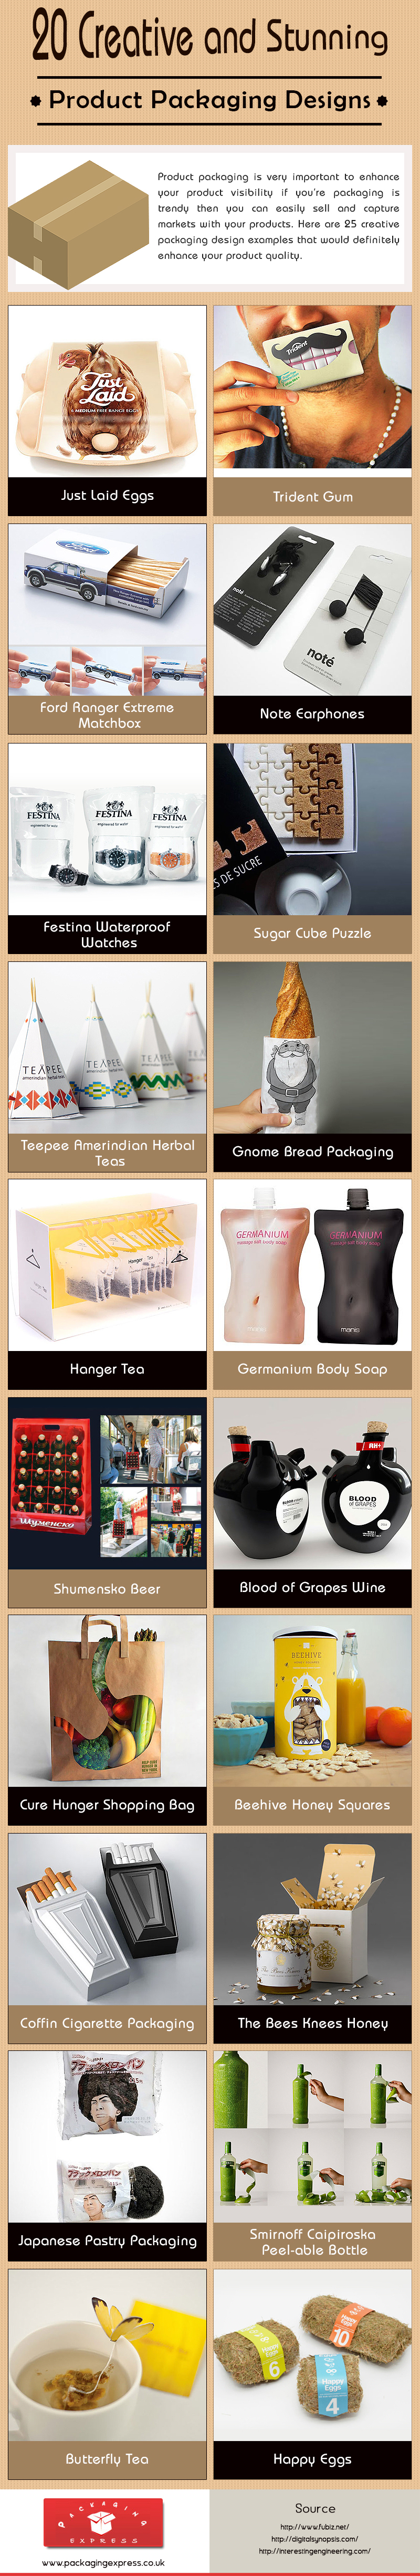 20 Creative and Stunning Product Packaging Designs [Infographic]